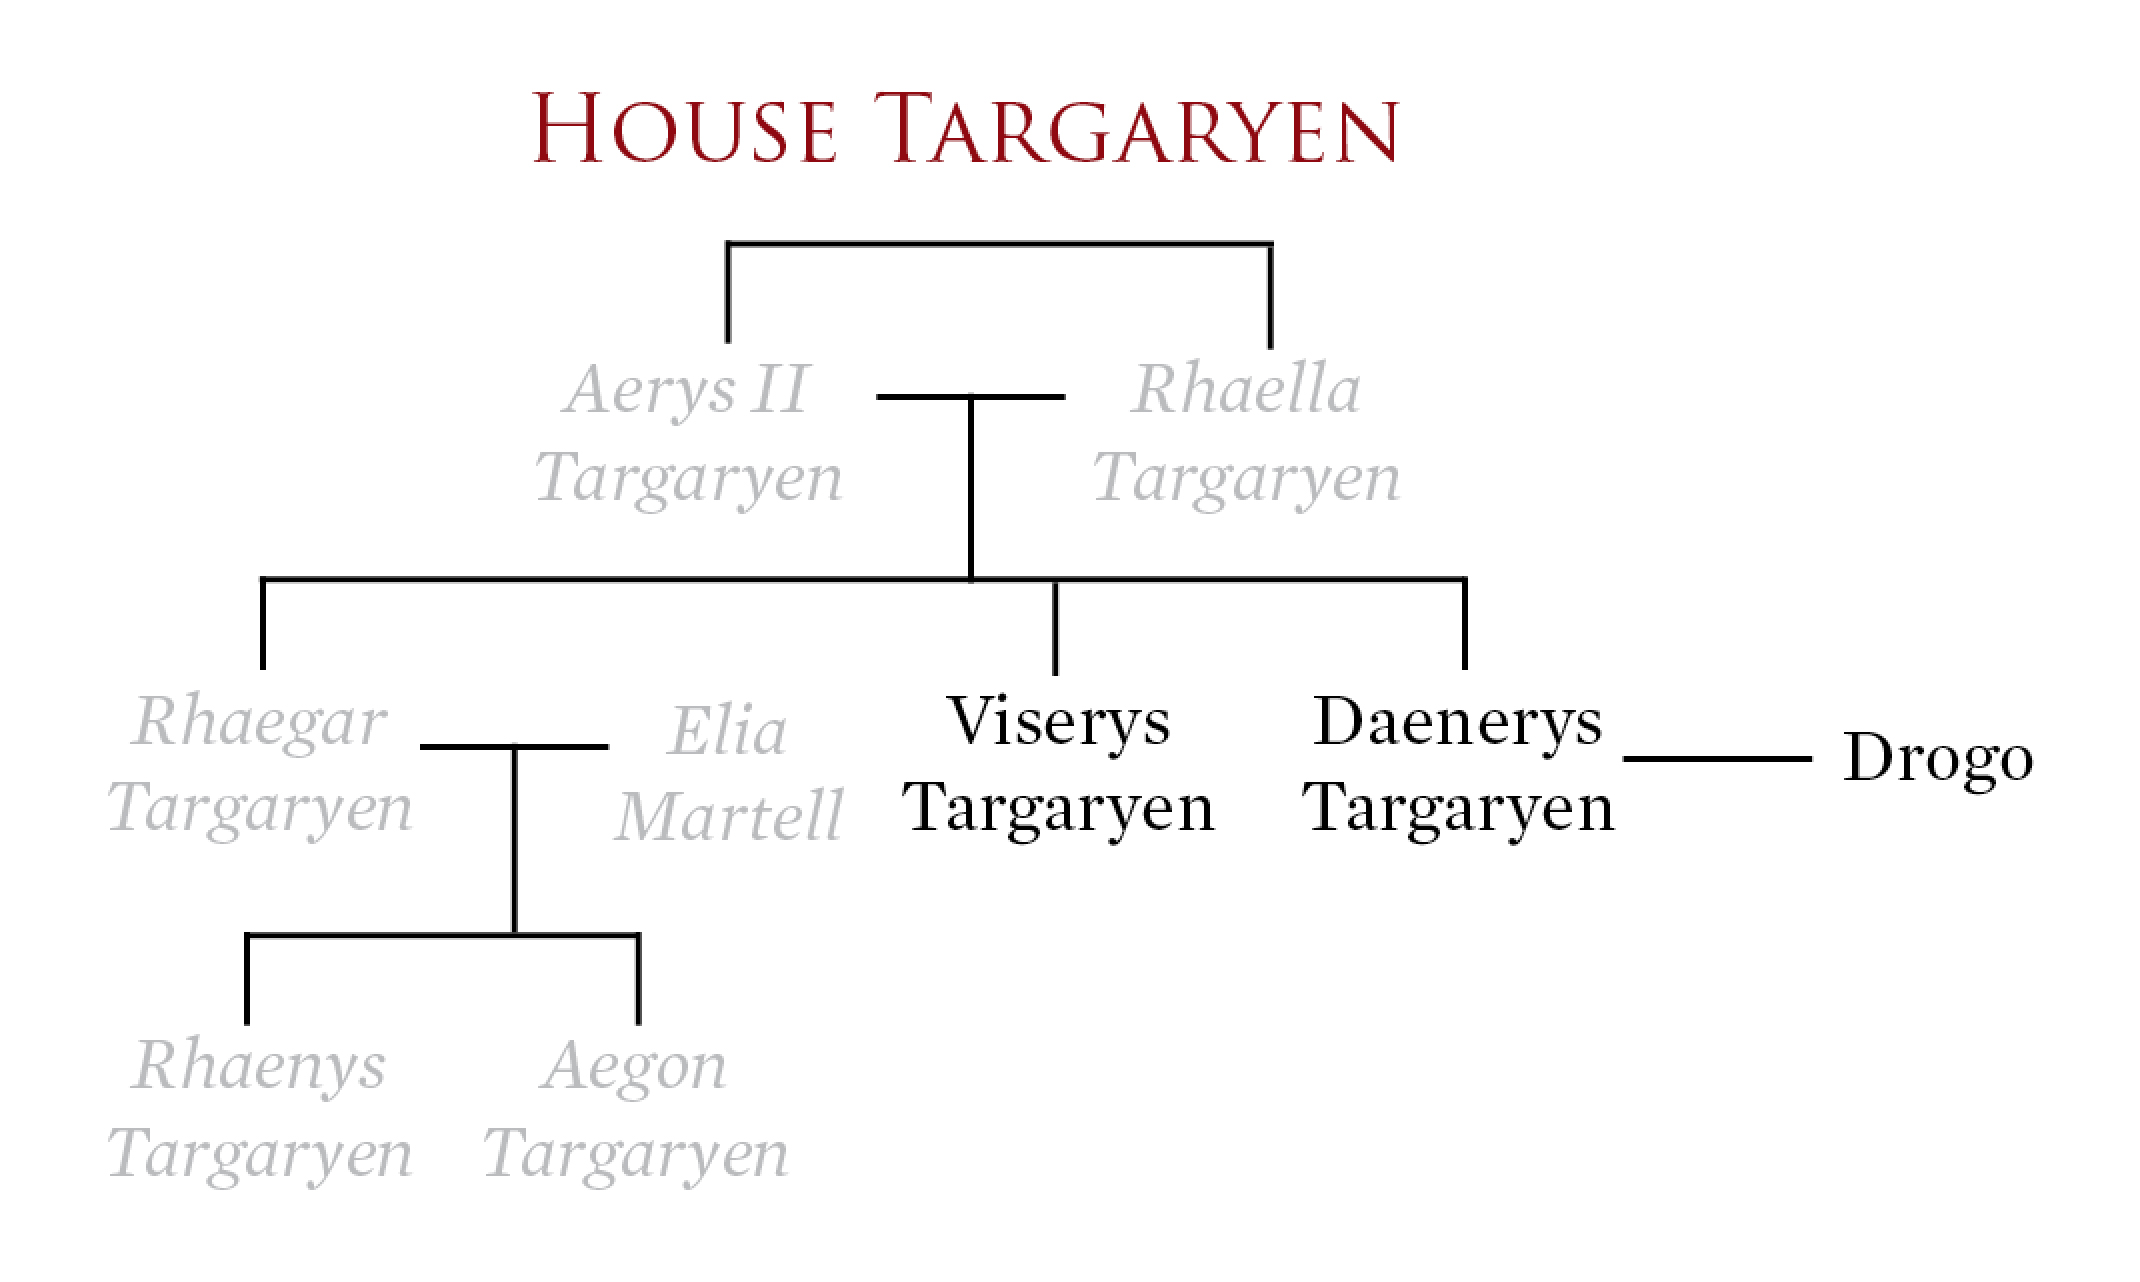 You'll find many empty branches in the once-powerful Targaryen family tree.